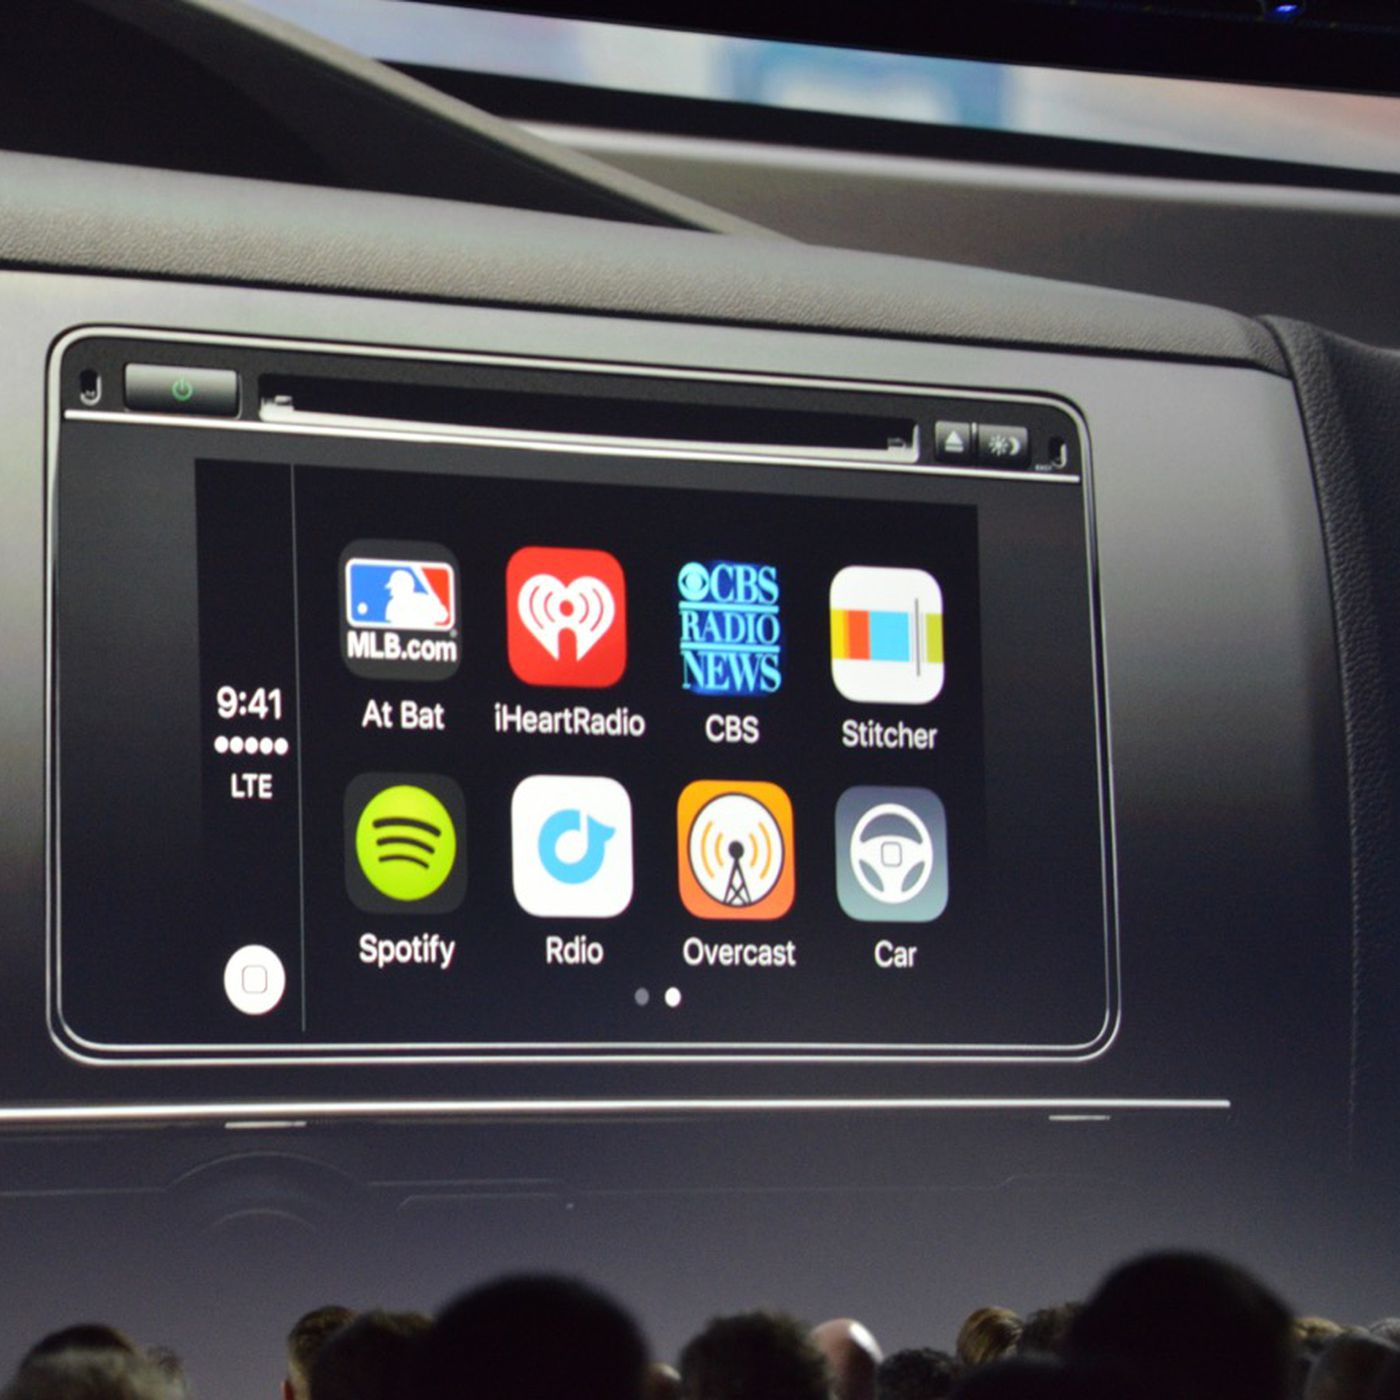 CarPlay is adding support for different display sizes